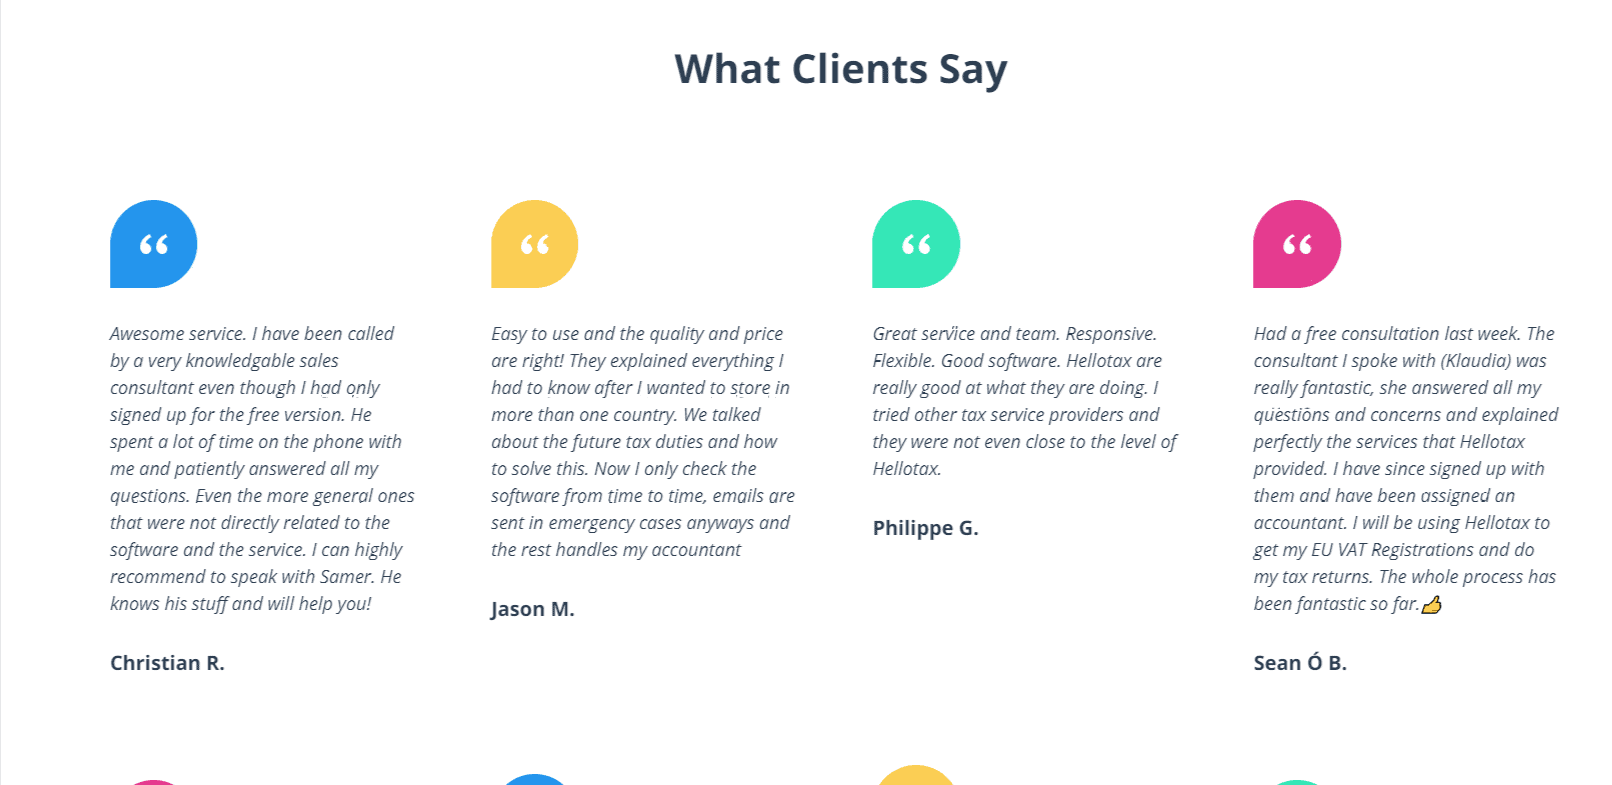 What client says